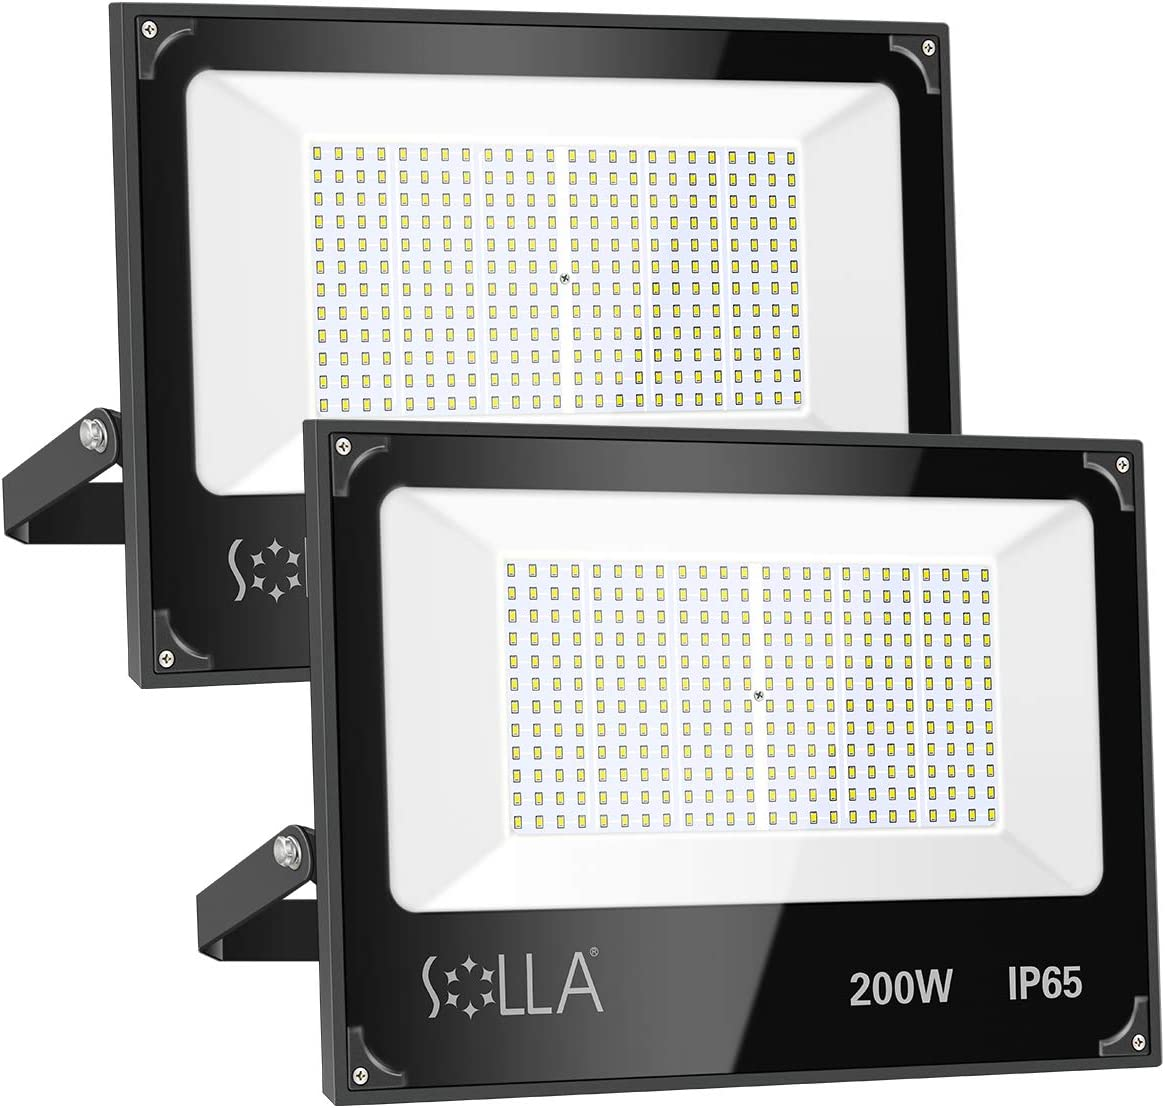 2 Pack SOLLA 200W Led Flood Light, 16000lm 6000K Daylight White Security Light Exterior Flood Lighting, Outdoor Indoor Lighting Fixture Landscape Floodlight Spotlight for Yard, Garden, Garage, Rooftop: Home Improvement